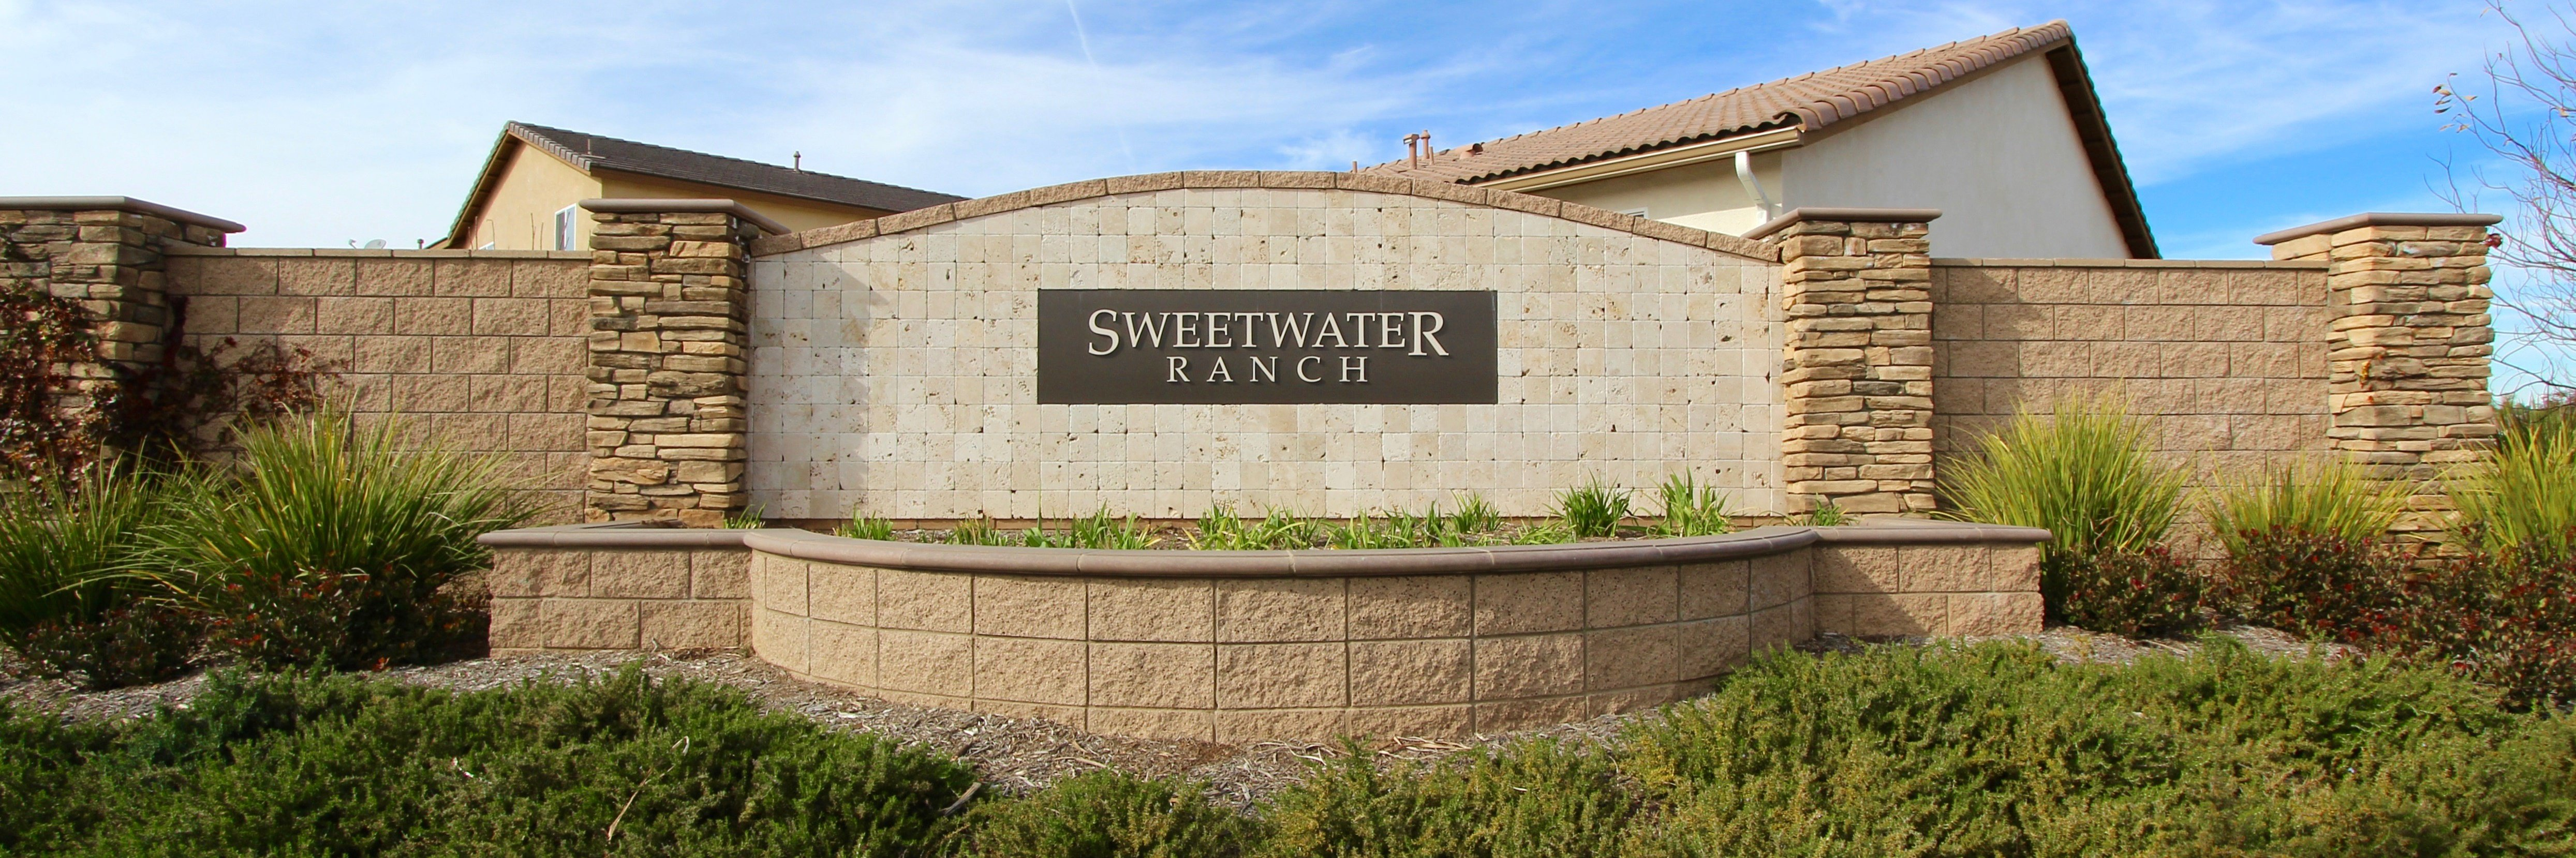 Sweetwater Ranch is a neighbood located in Winchester Ca